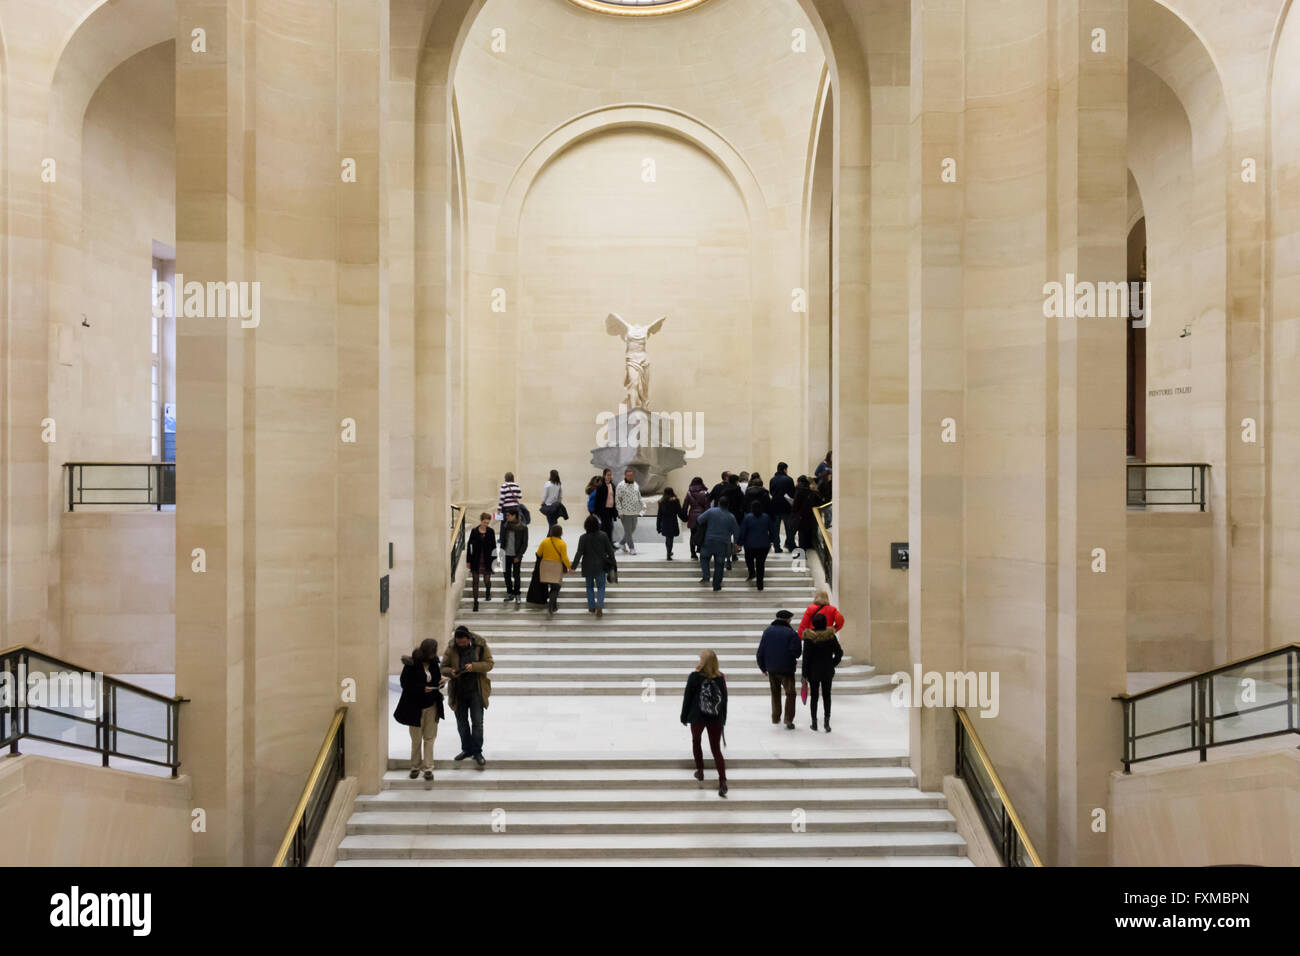 Stock Photo. Winged Victory of Samothrace (also known as the Nike of  Samothrace).